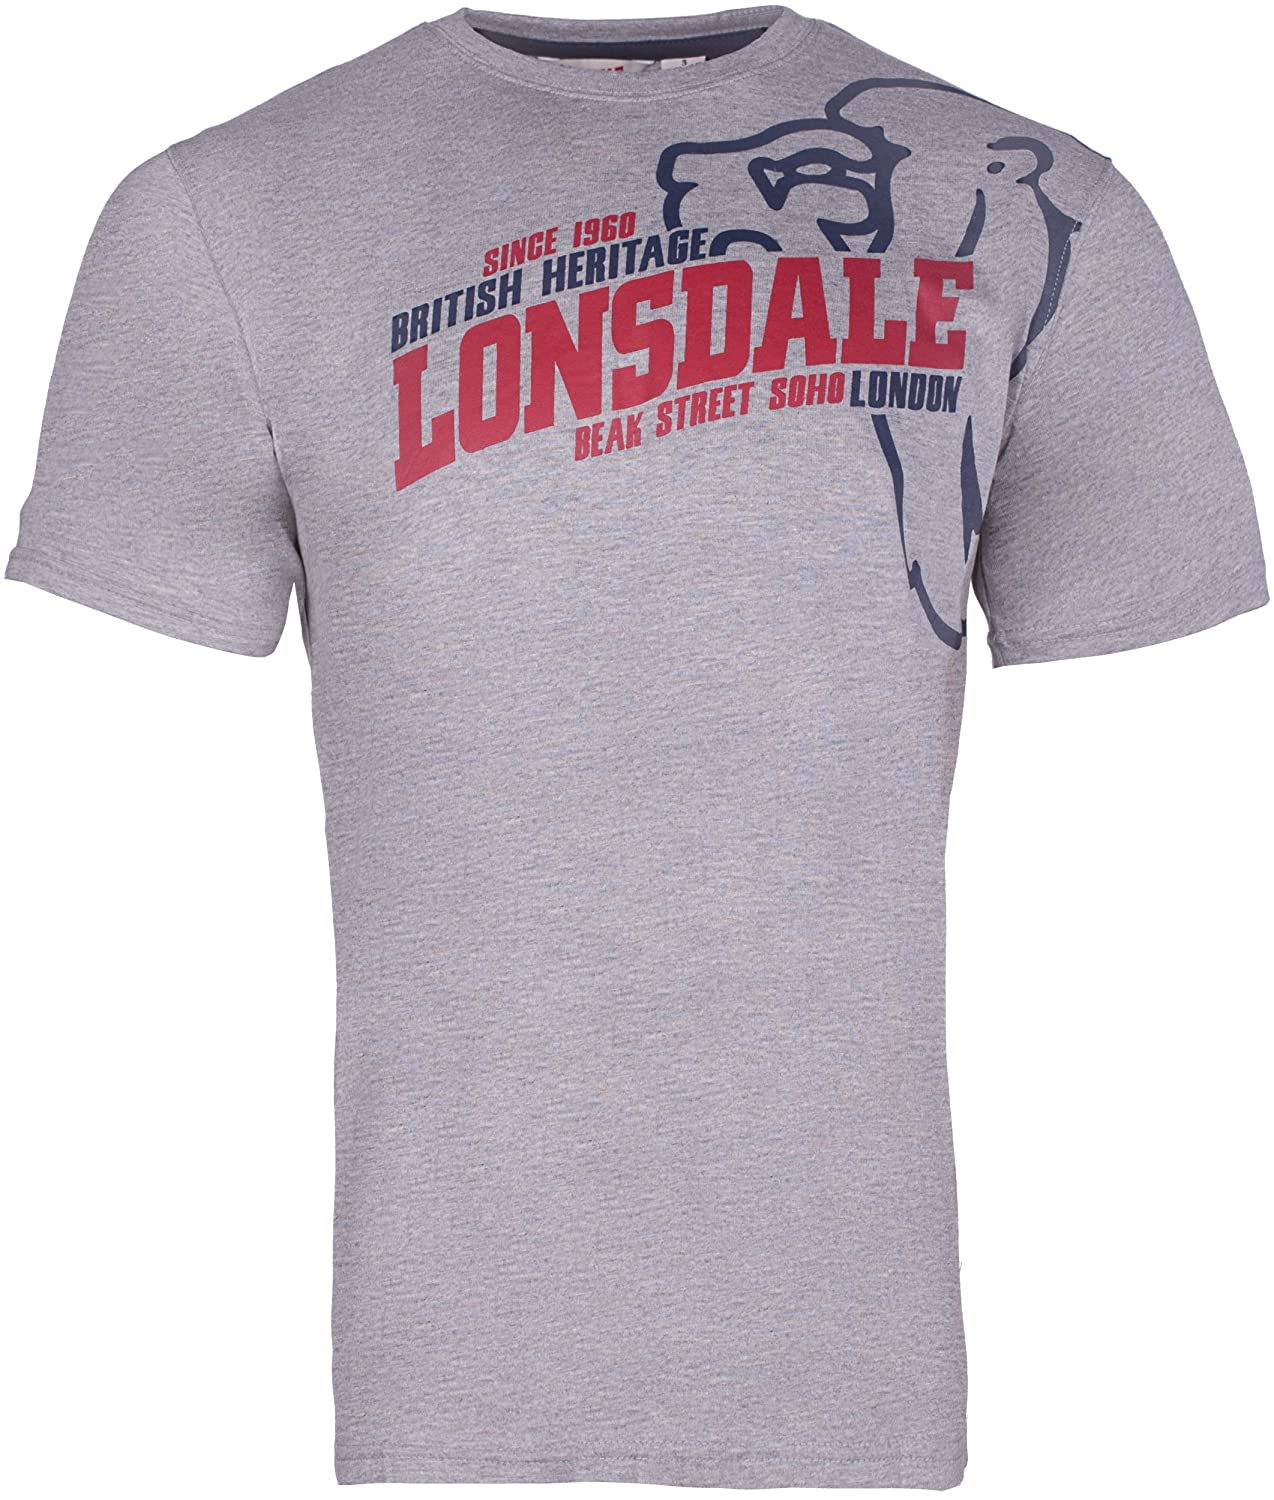 Lonsdale T-Shirt Trägerhemd Walkey, T-shirt Uomo Lonsdale London 111273